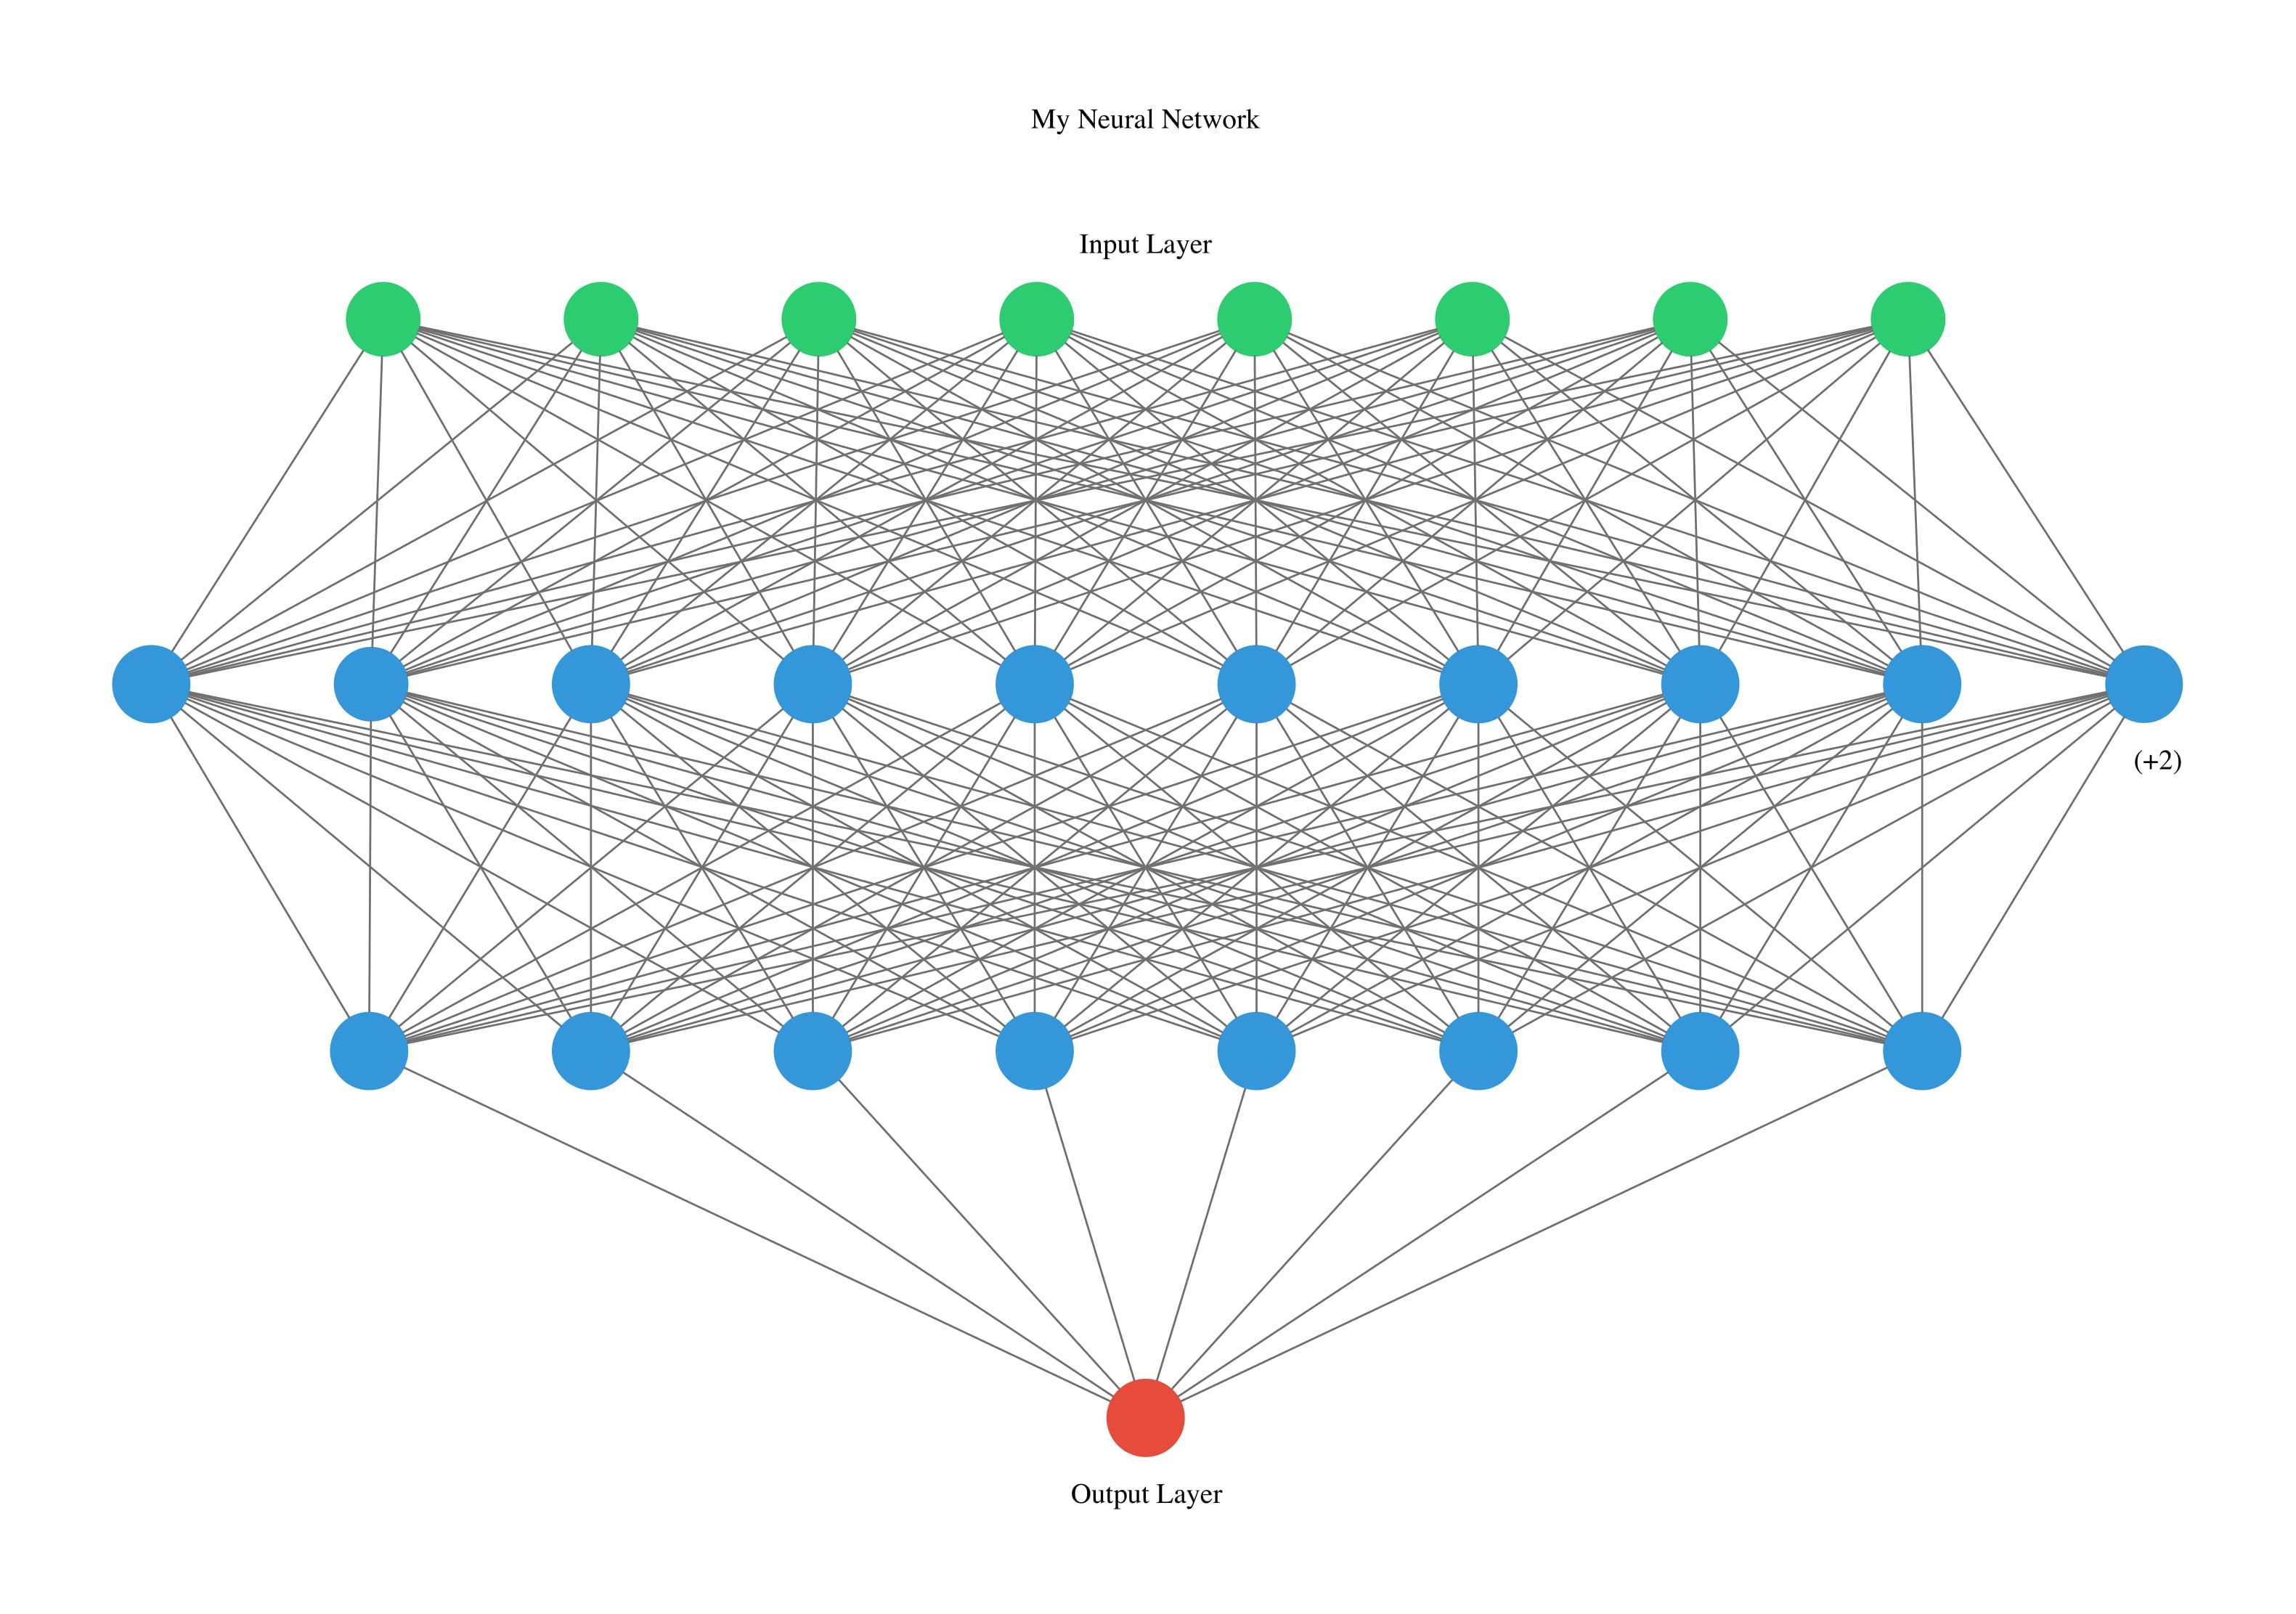 Visualizing Artificial Neural Networks (ANNs) with just One